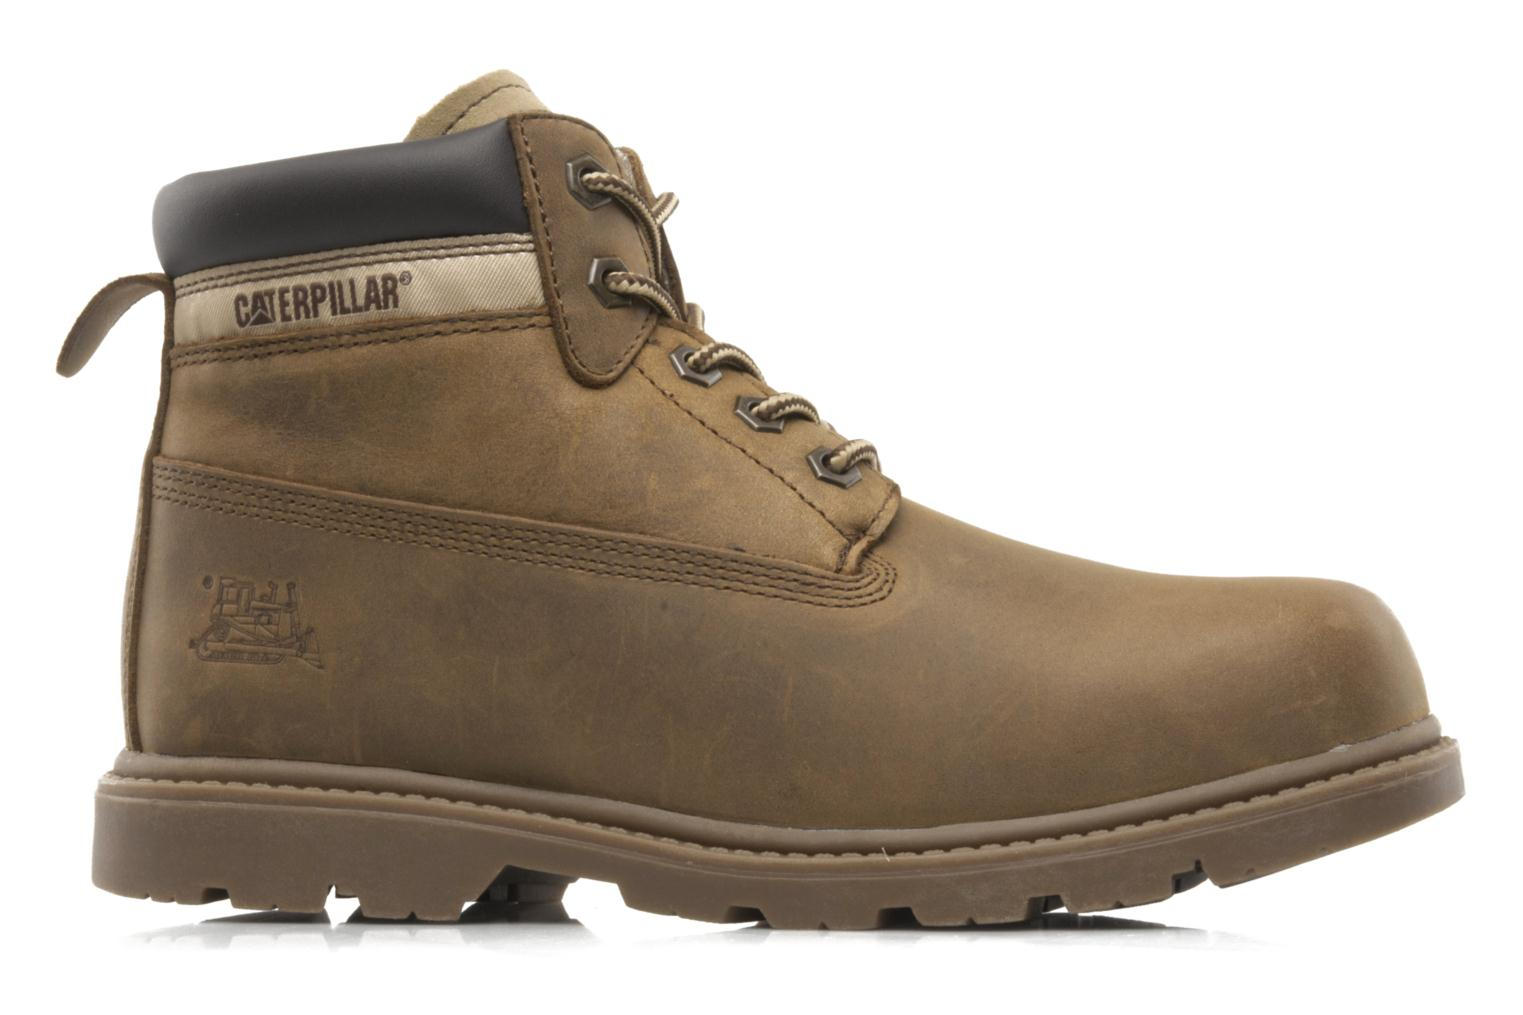 Bottines et boots Caterpillar Colorado Plus Marron vue derrière